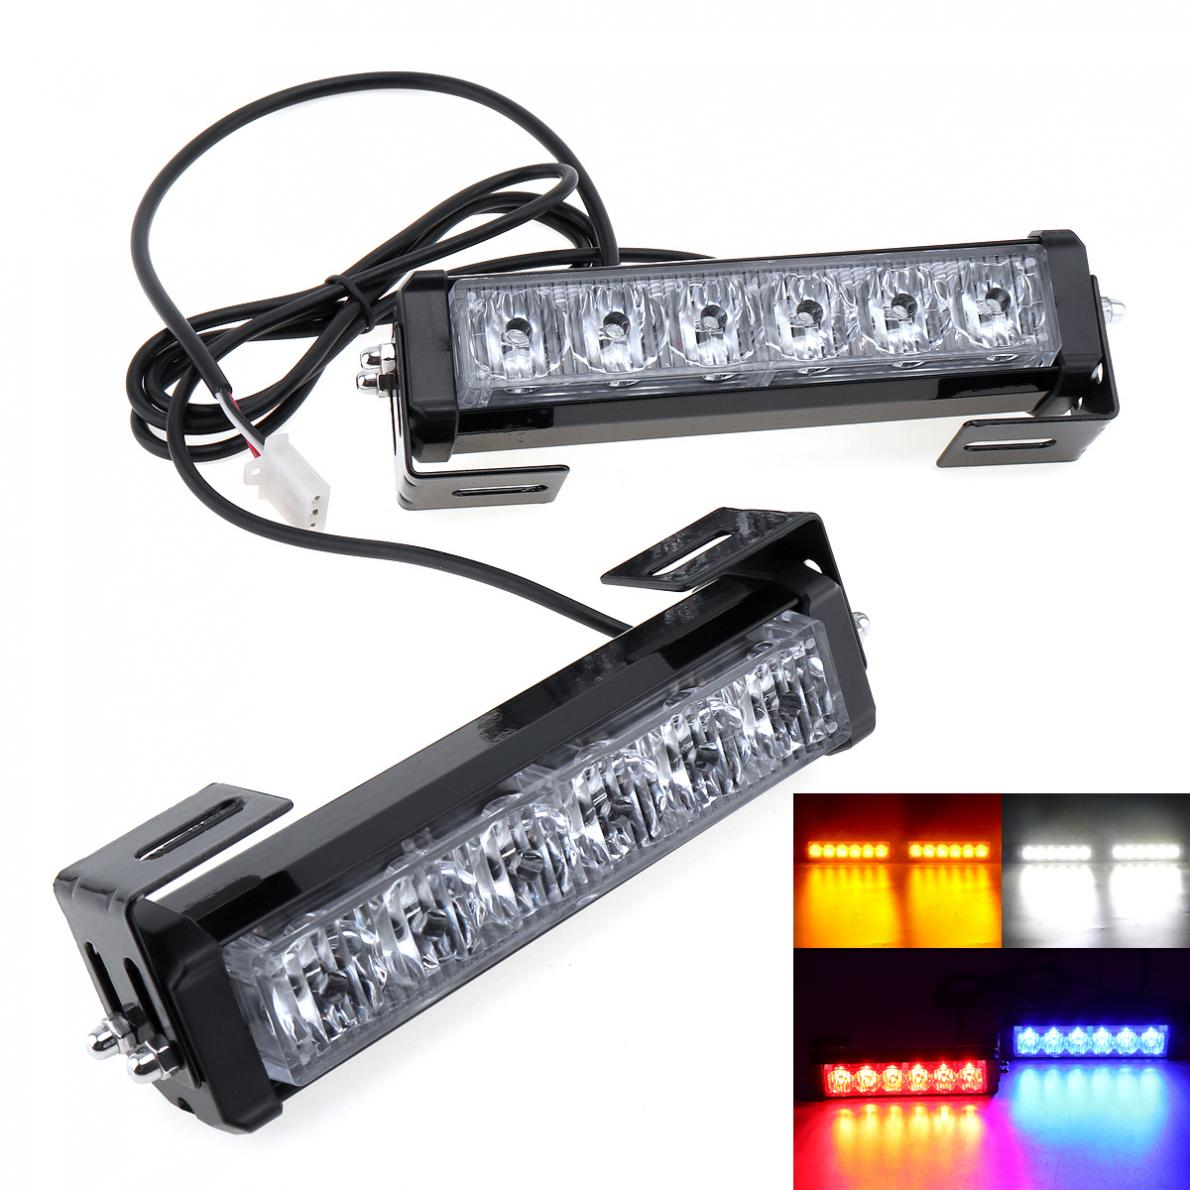 3000Lm DC 12V 36W Strobe Car Warning Light LED Daytime Running Police Emergency Light DRL Lamp for Truck Motorcycle Car SUV3000Lm DC 12V 36W Strobe Car Warning Light LED Daytime Running Police Emergency Light DRL Lamp for Truck Motorcycle Car SUV